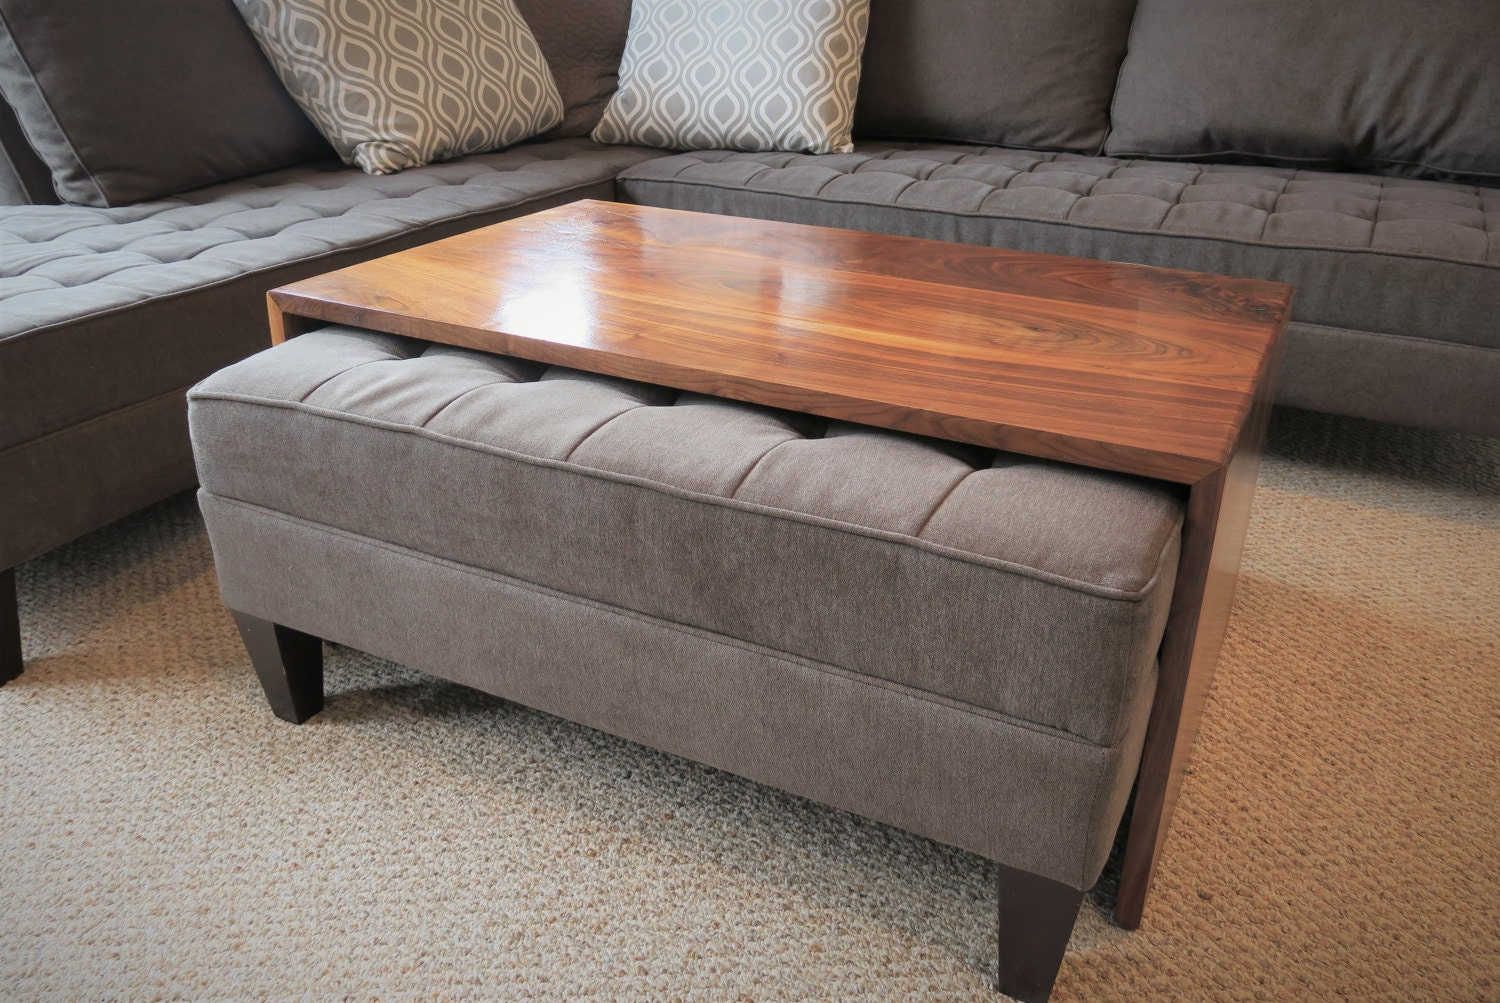 waterfall wood coffee table ottoman coffee table ottoman. Black Bedroom Furniture Sets. Home Design Ideas